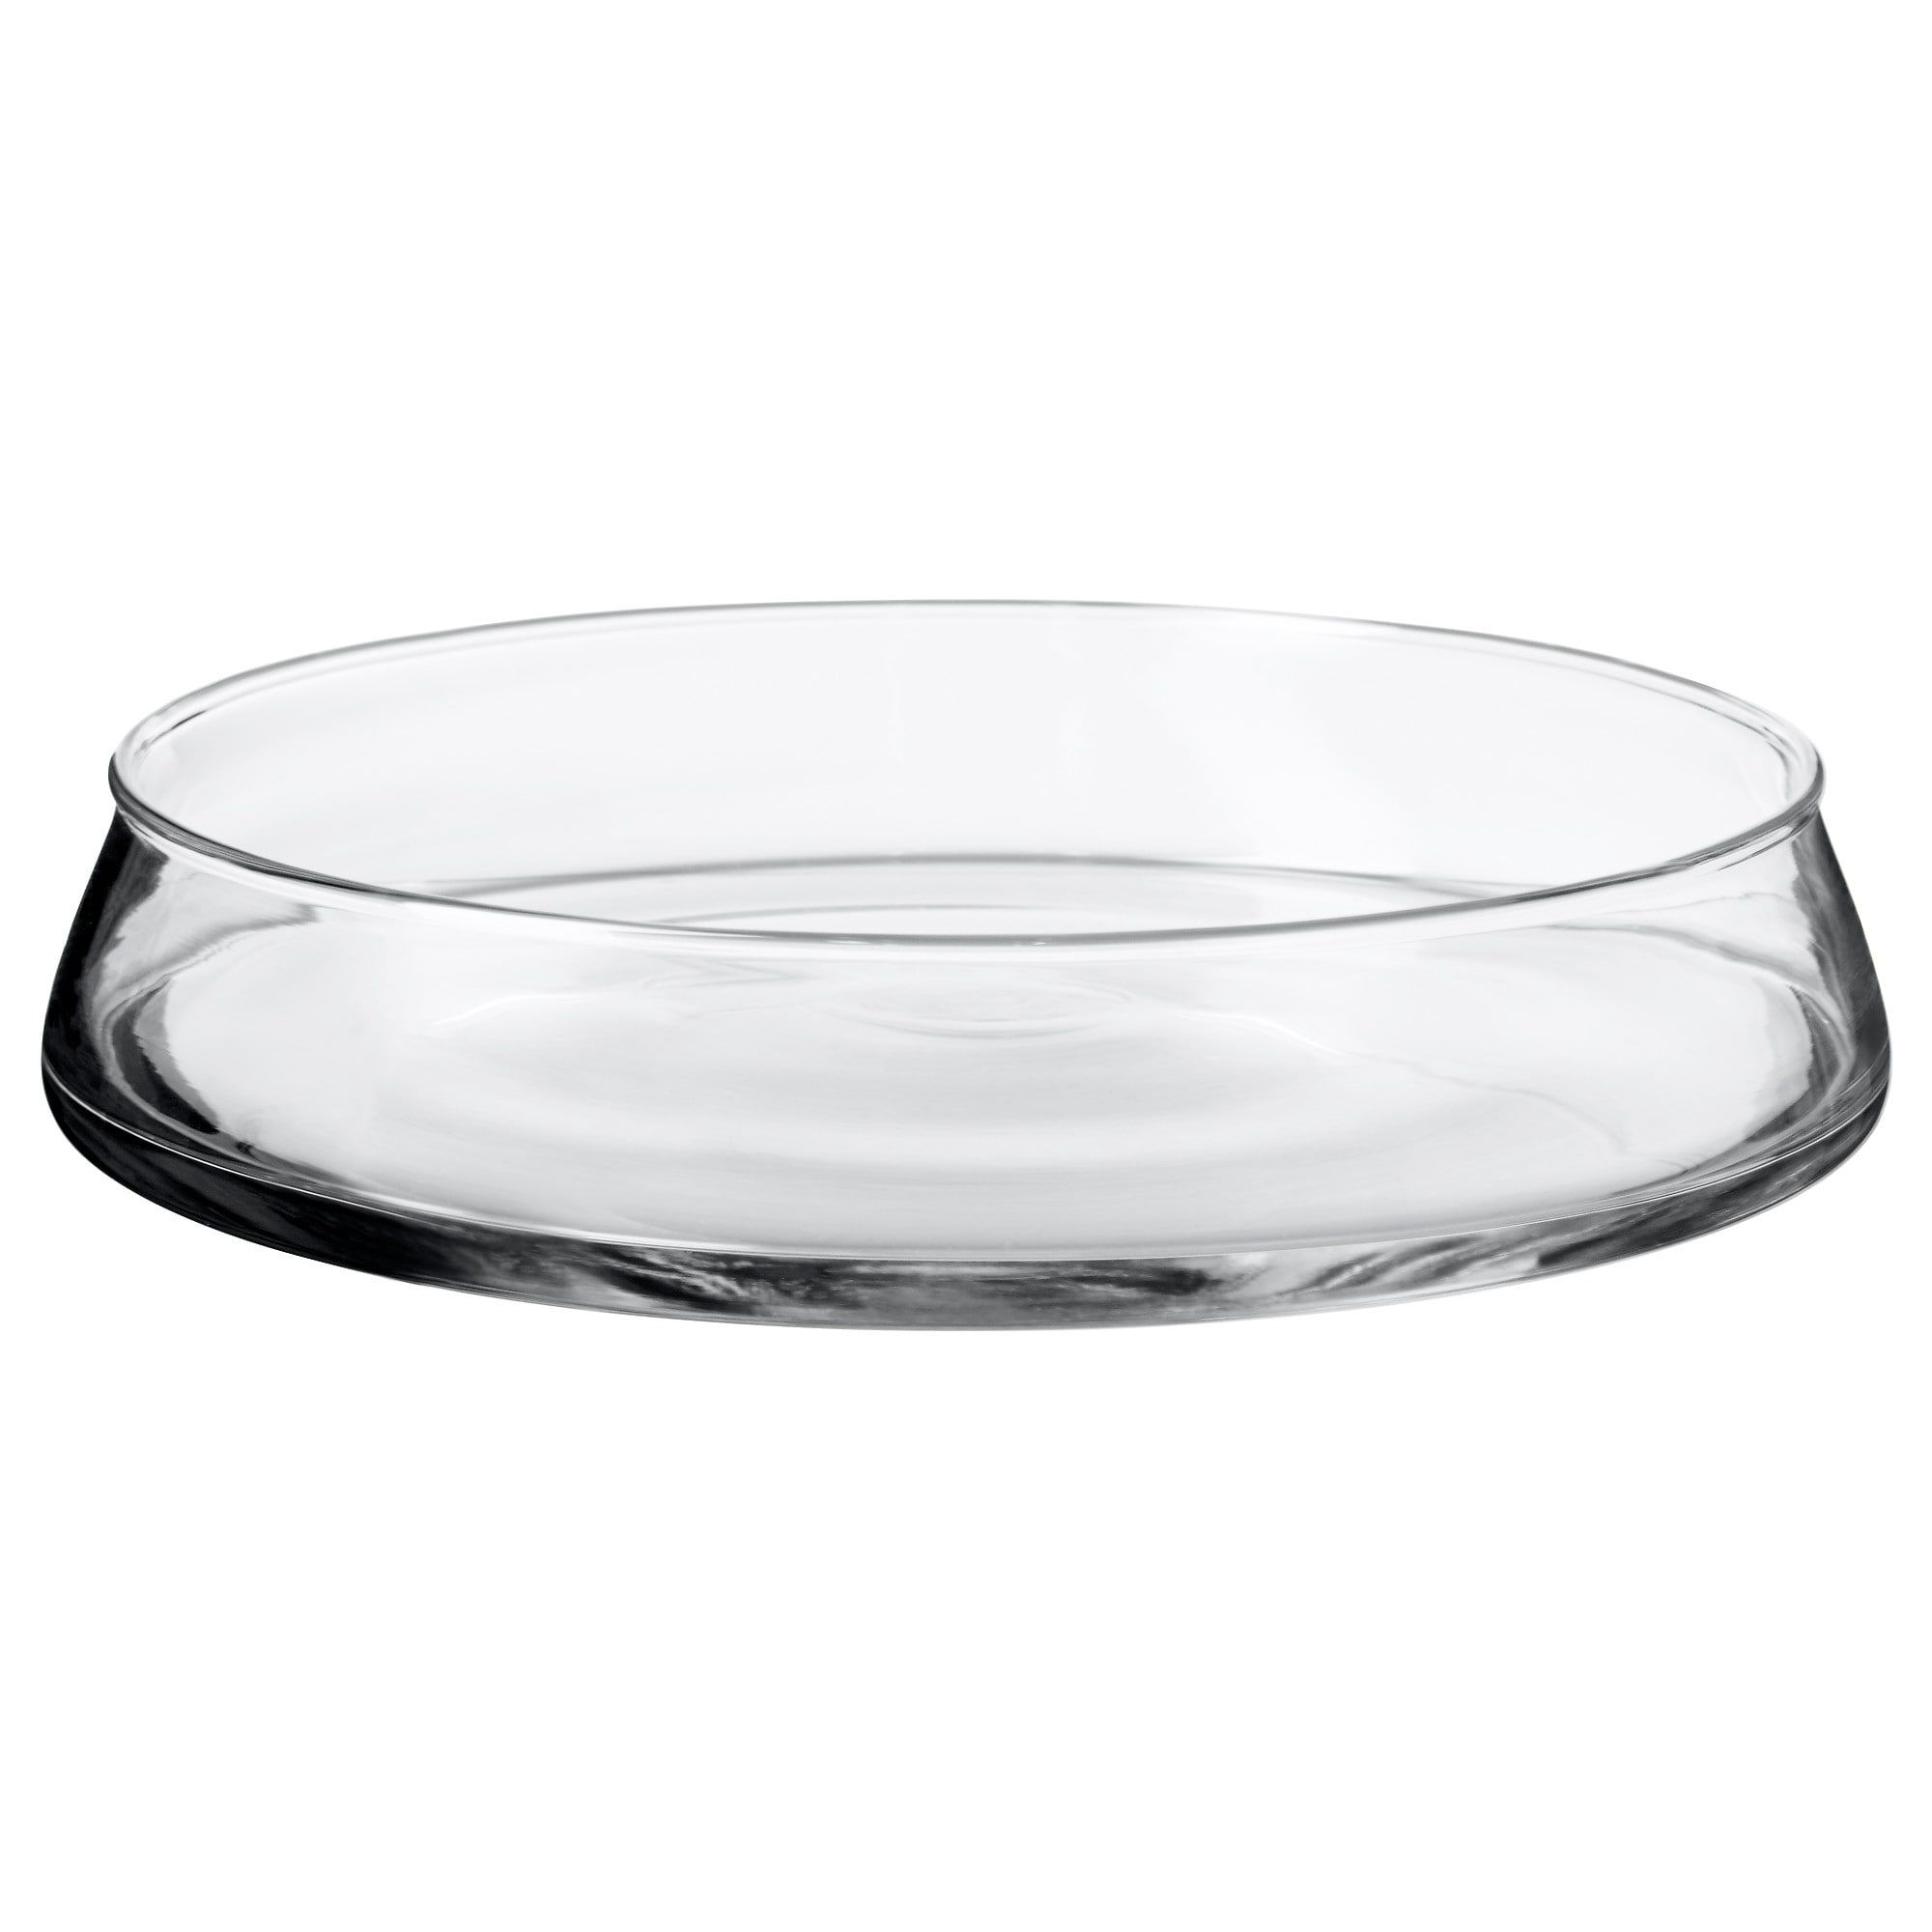 Furniture Home Furnishings Find Your Inspiration Decorative Bowls Ikea Glass Bowl